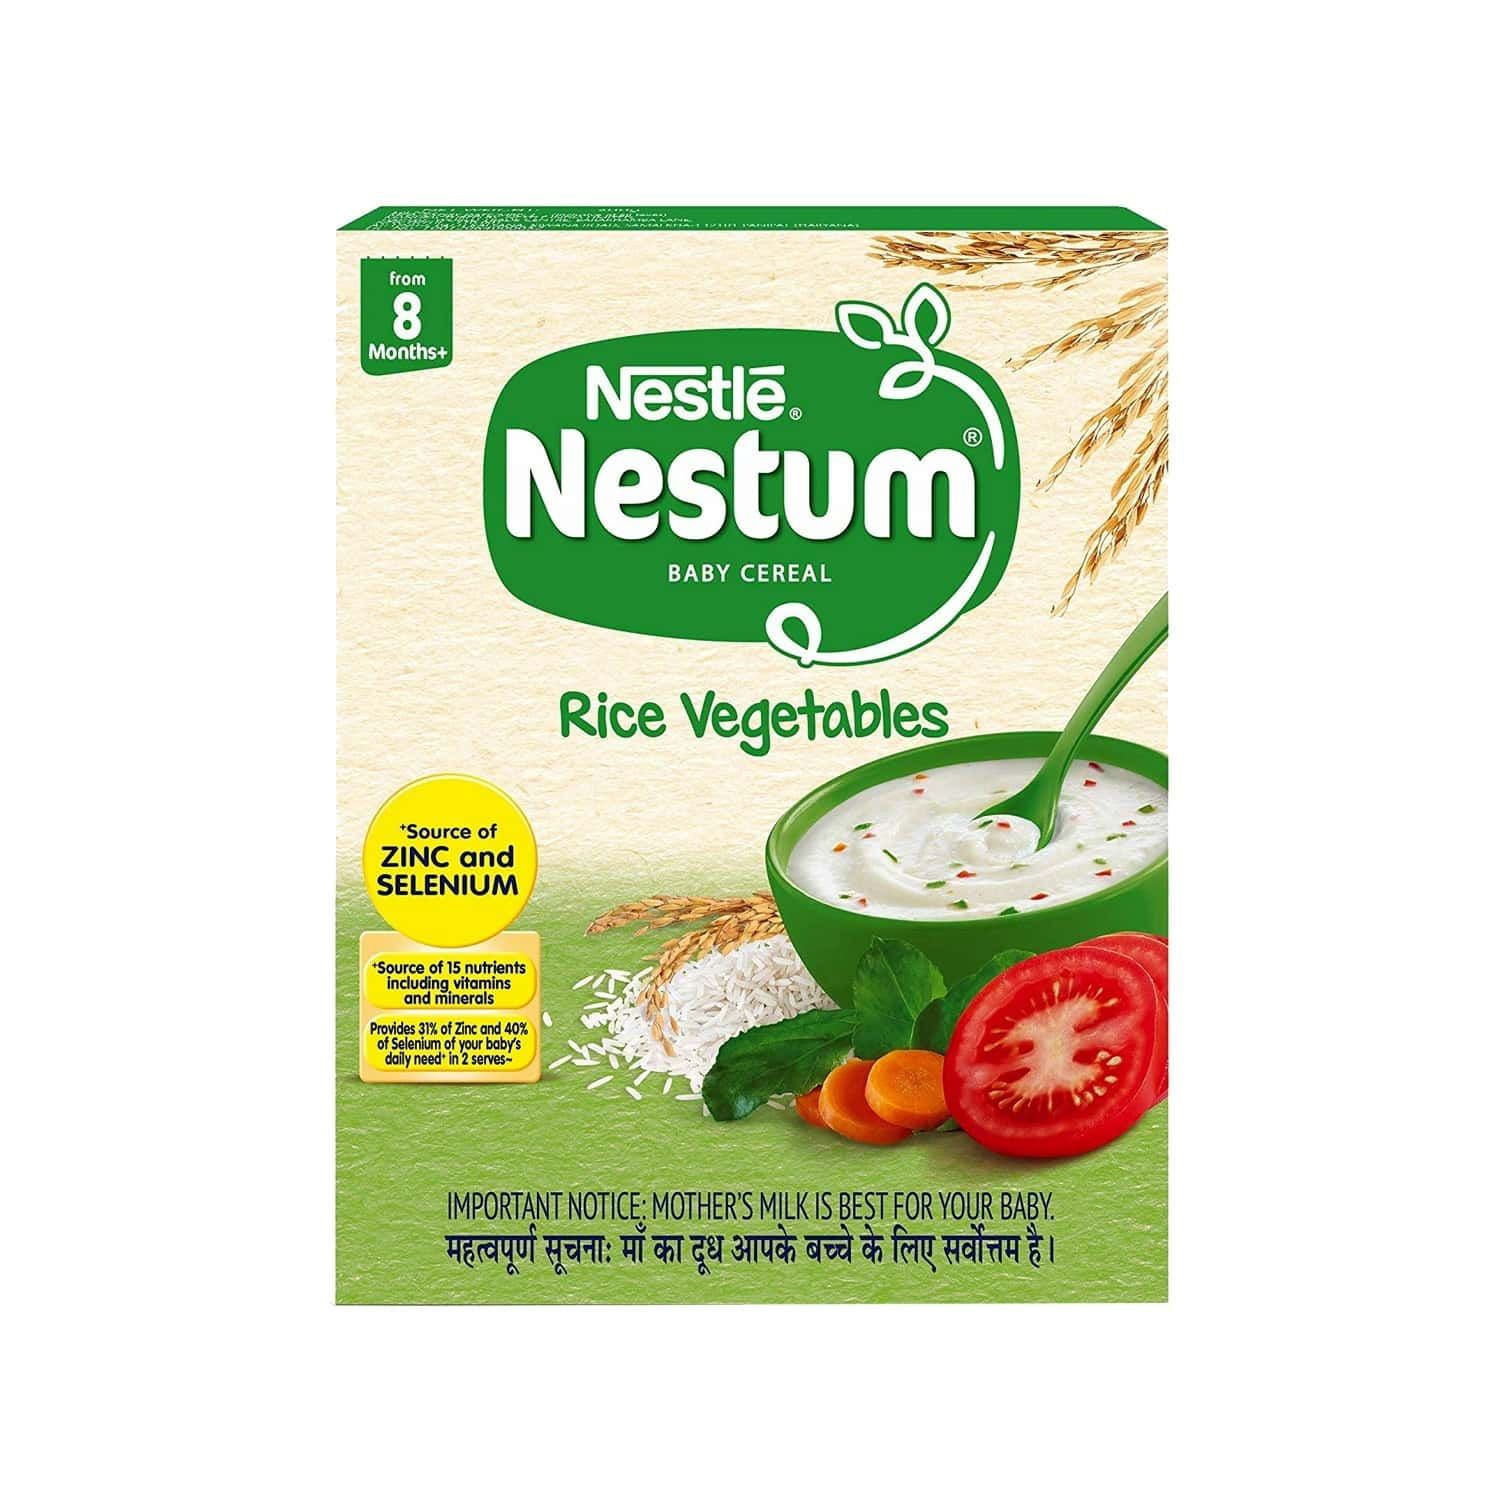 Nestle Nestum Infant Cereal Stage-2 (8 - 24 Months) Rice Vegetables Refill 300 Gm